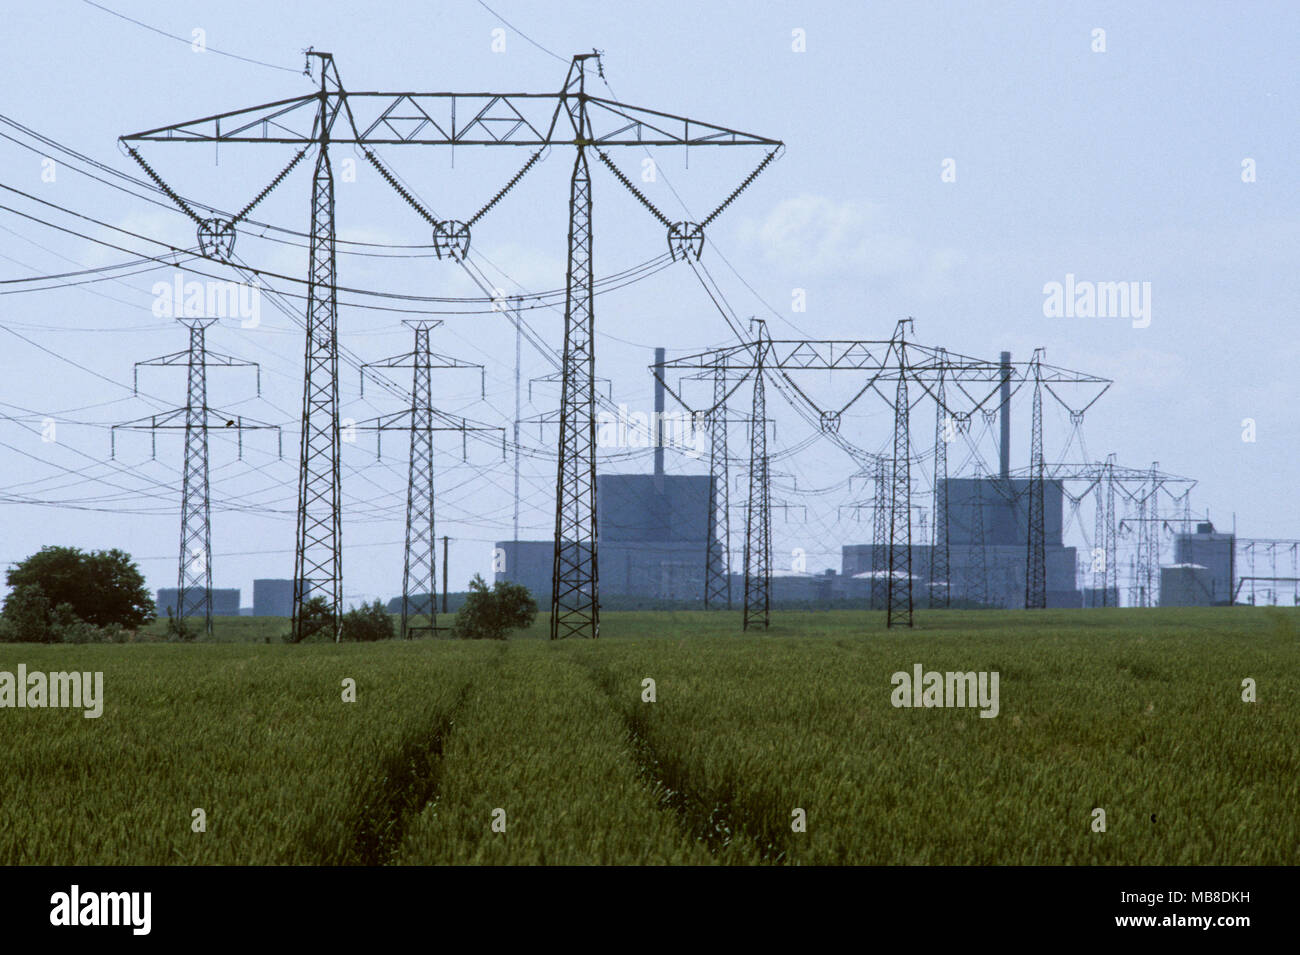 Barsebäck nuclear power plant in Skåne Sweden, 20 km from Danish capital Copenhagen was pressed by  Danish government to closed down,wich is the facts - Stock Image